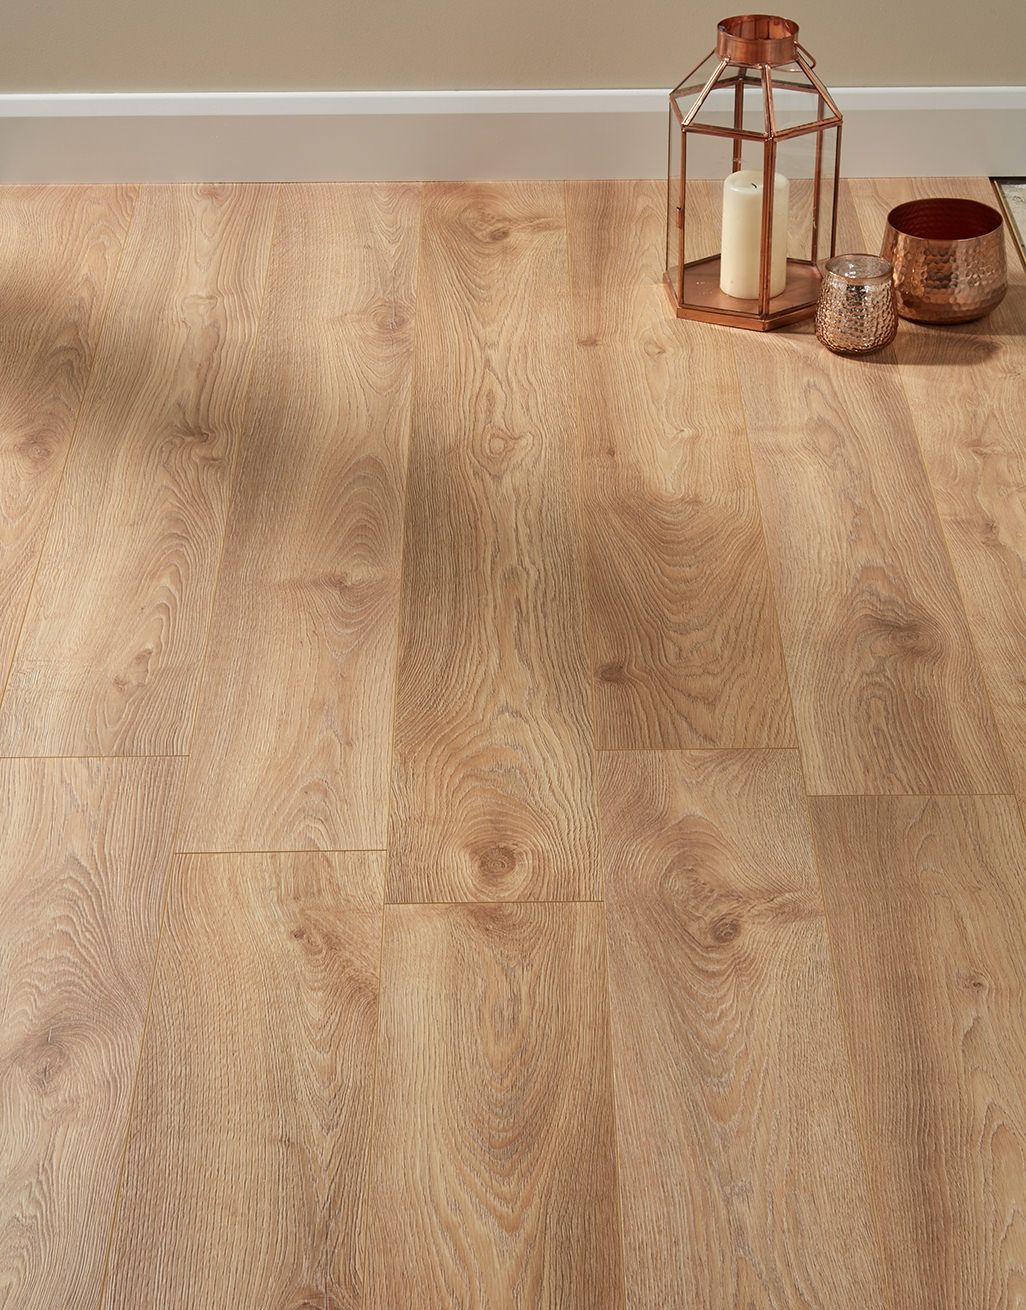 The Supreme 12mm Long Board Macro Oak Nature Laminate Flooring Faithfully Recreates The Textures And Colours Of Direct Wood Flooring Laminate Flooring Flooring